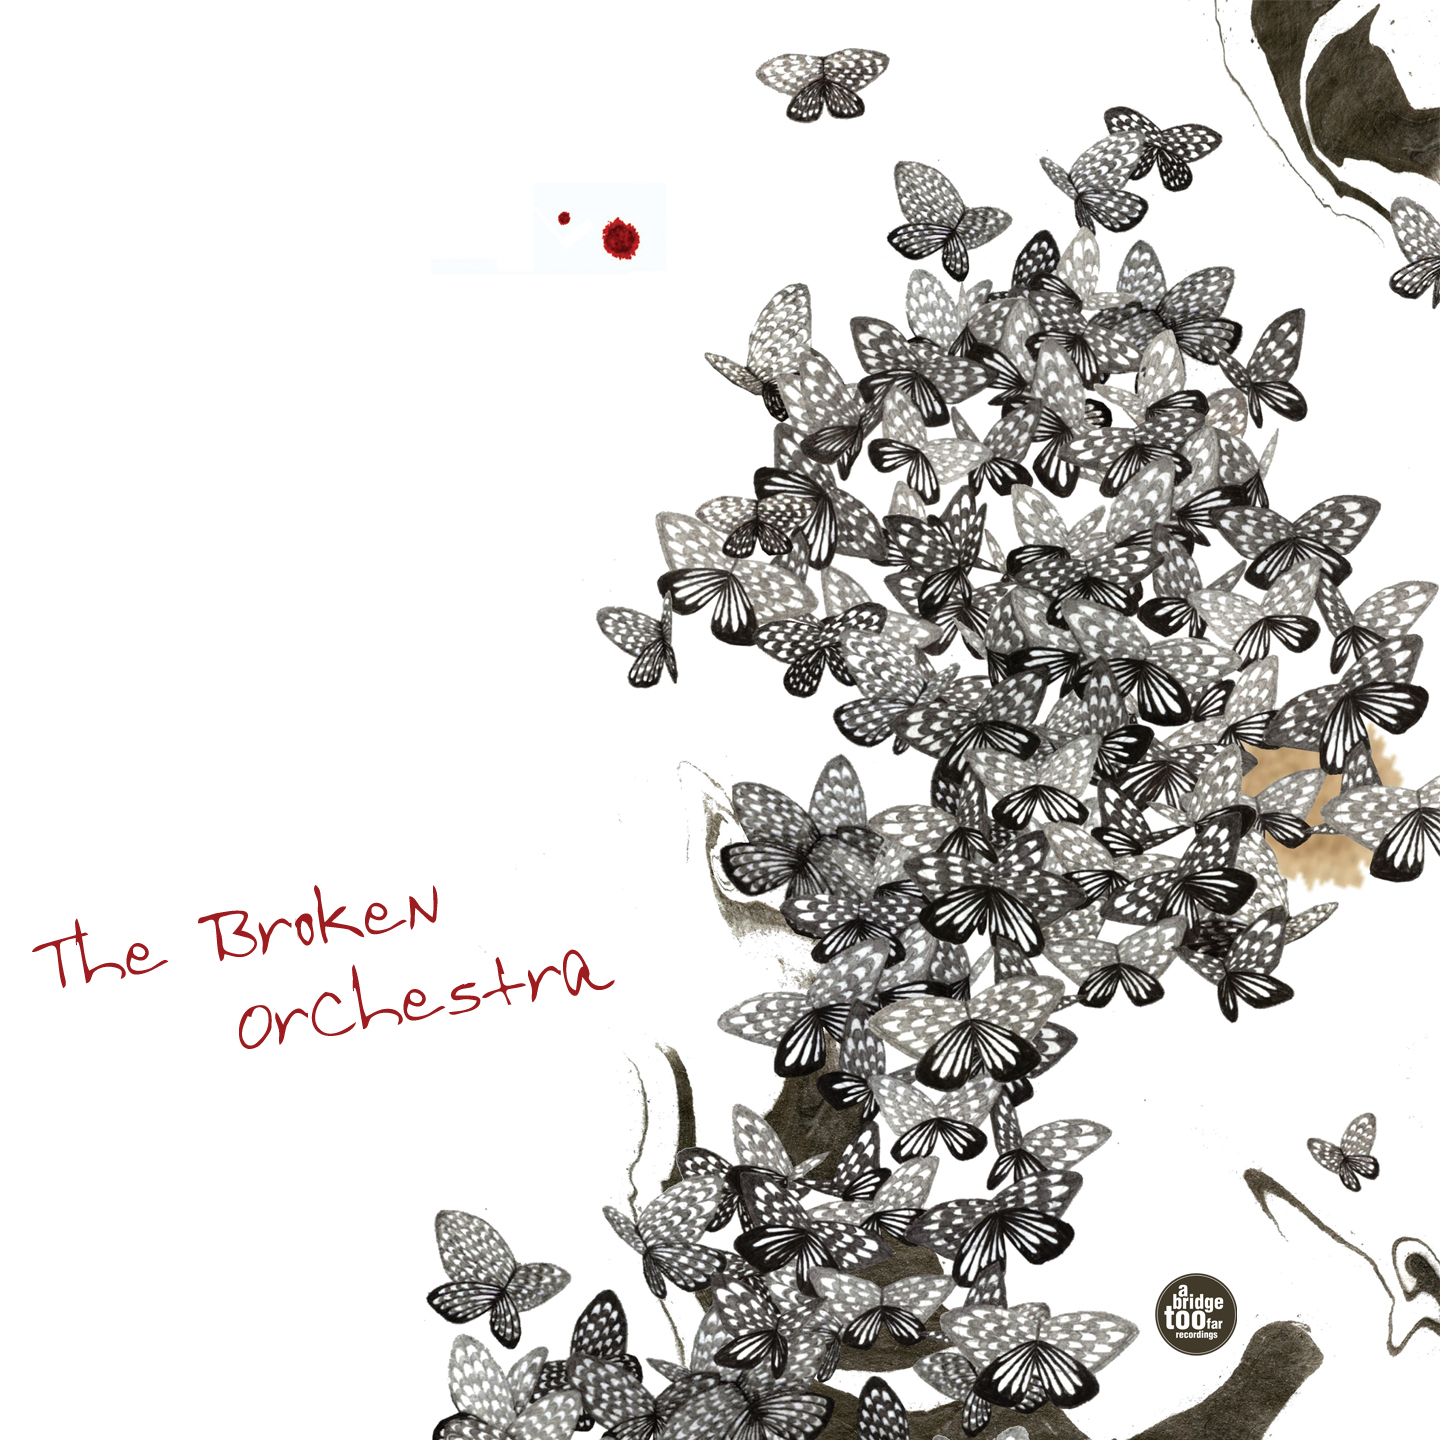 News: Blended sounds with Pat D's The Broken Orchestra